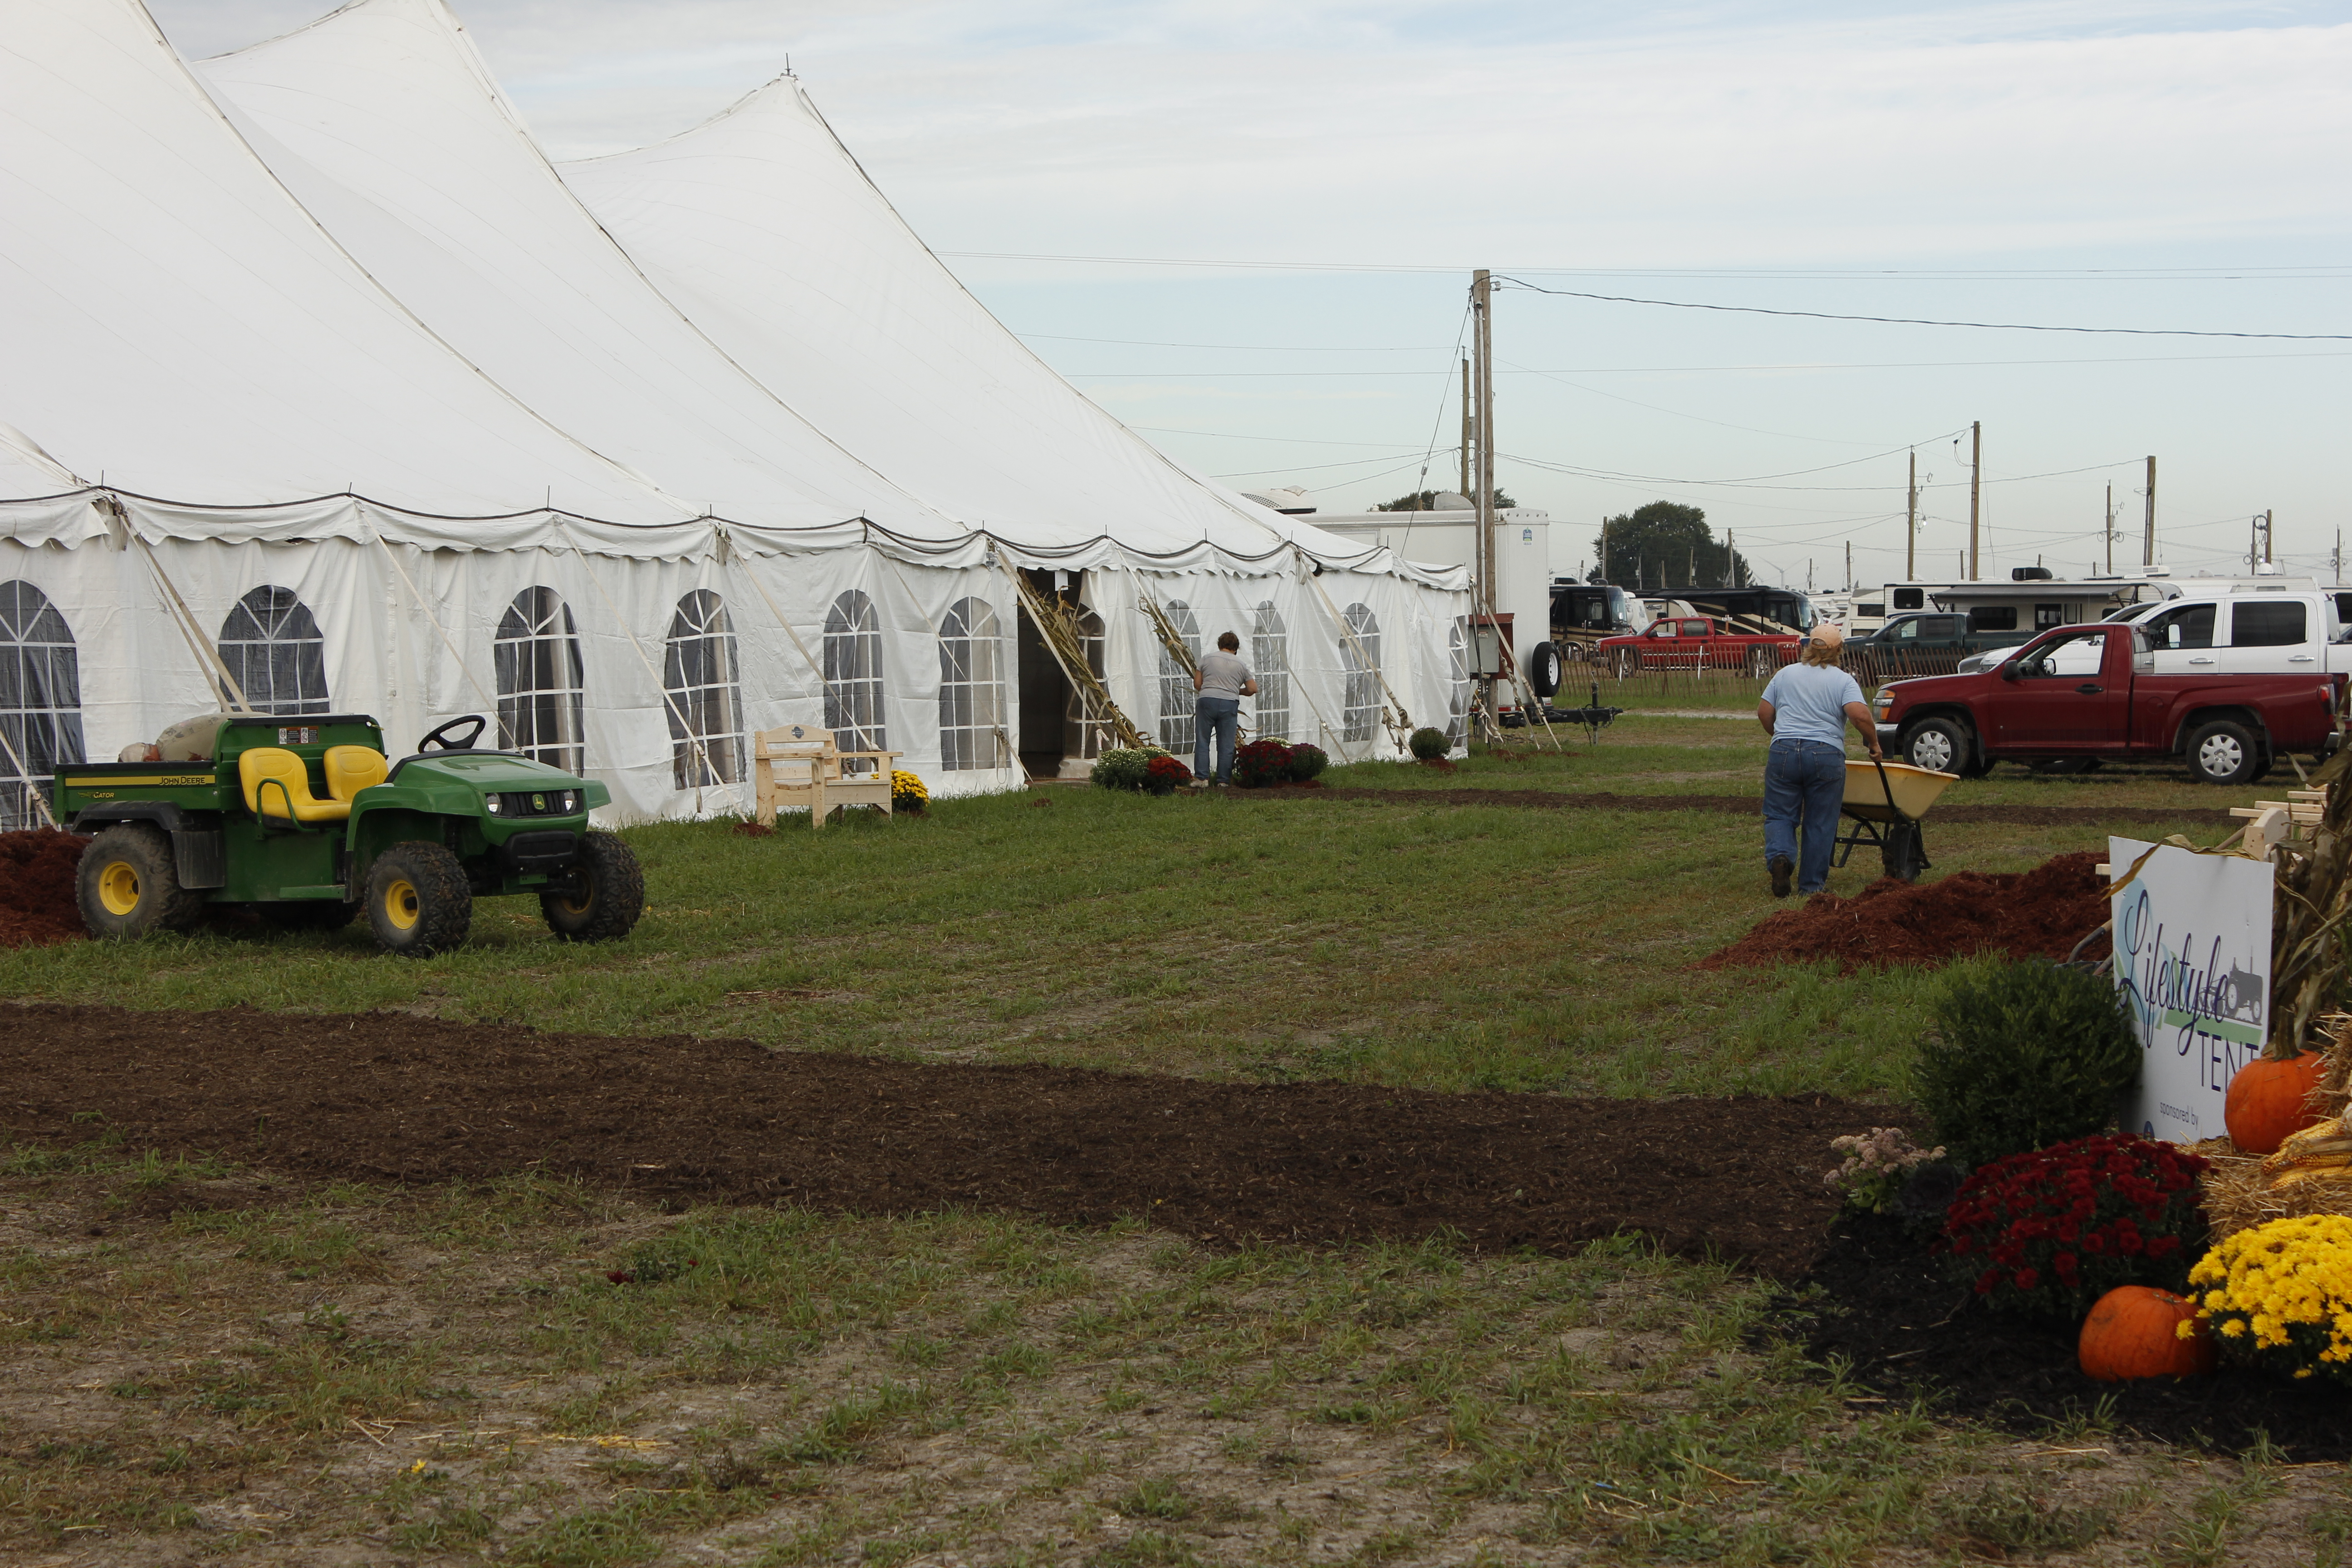 International Plowing Match's 850 acres are ready for crowds